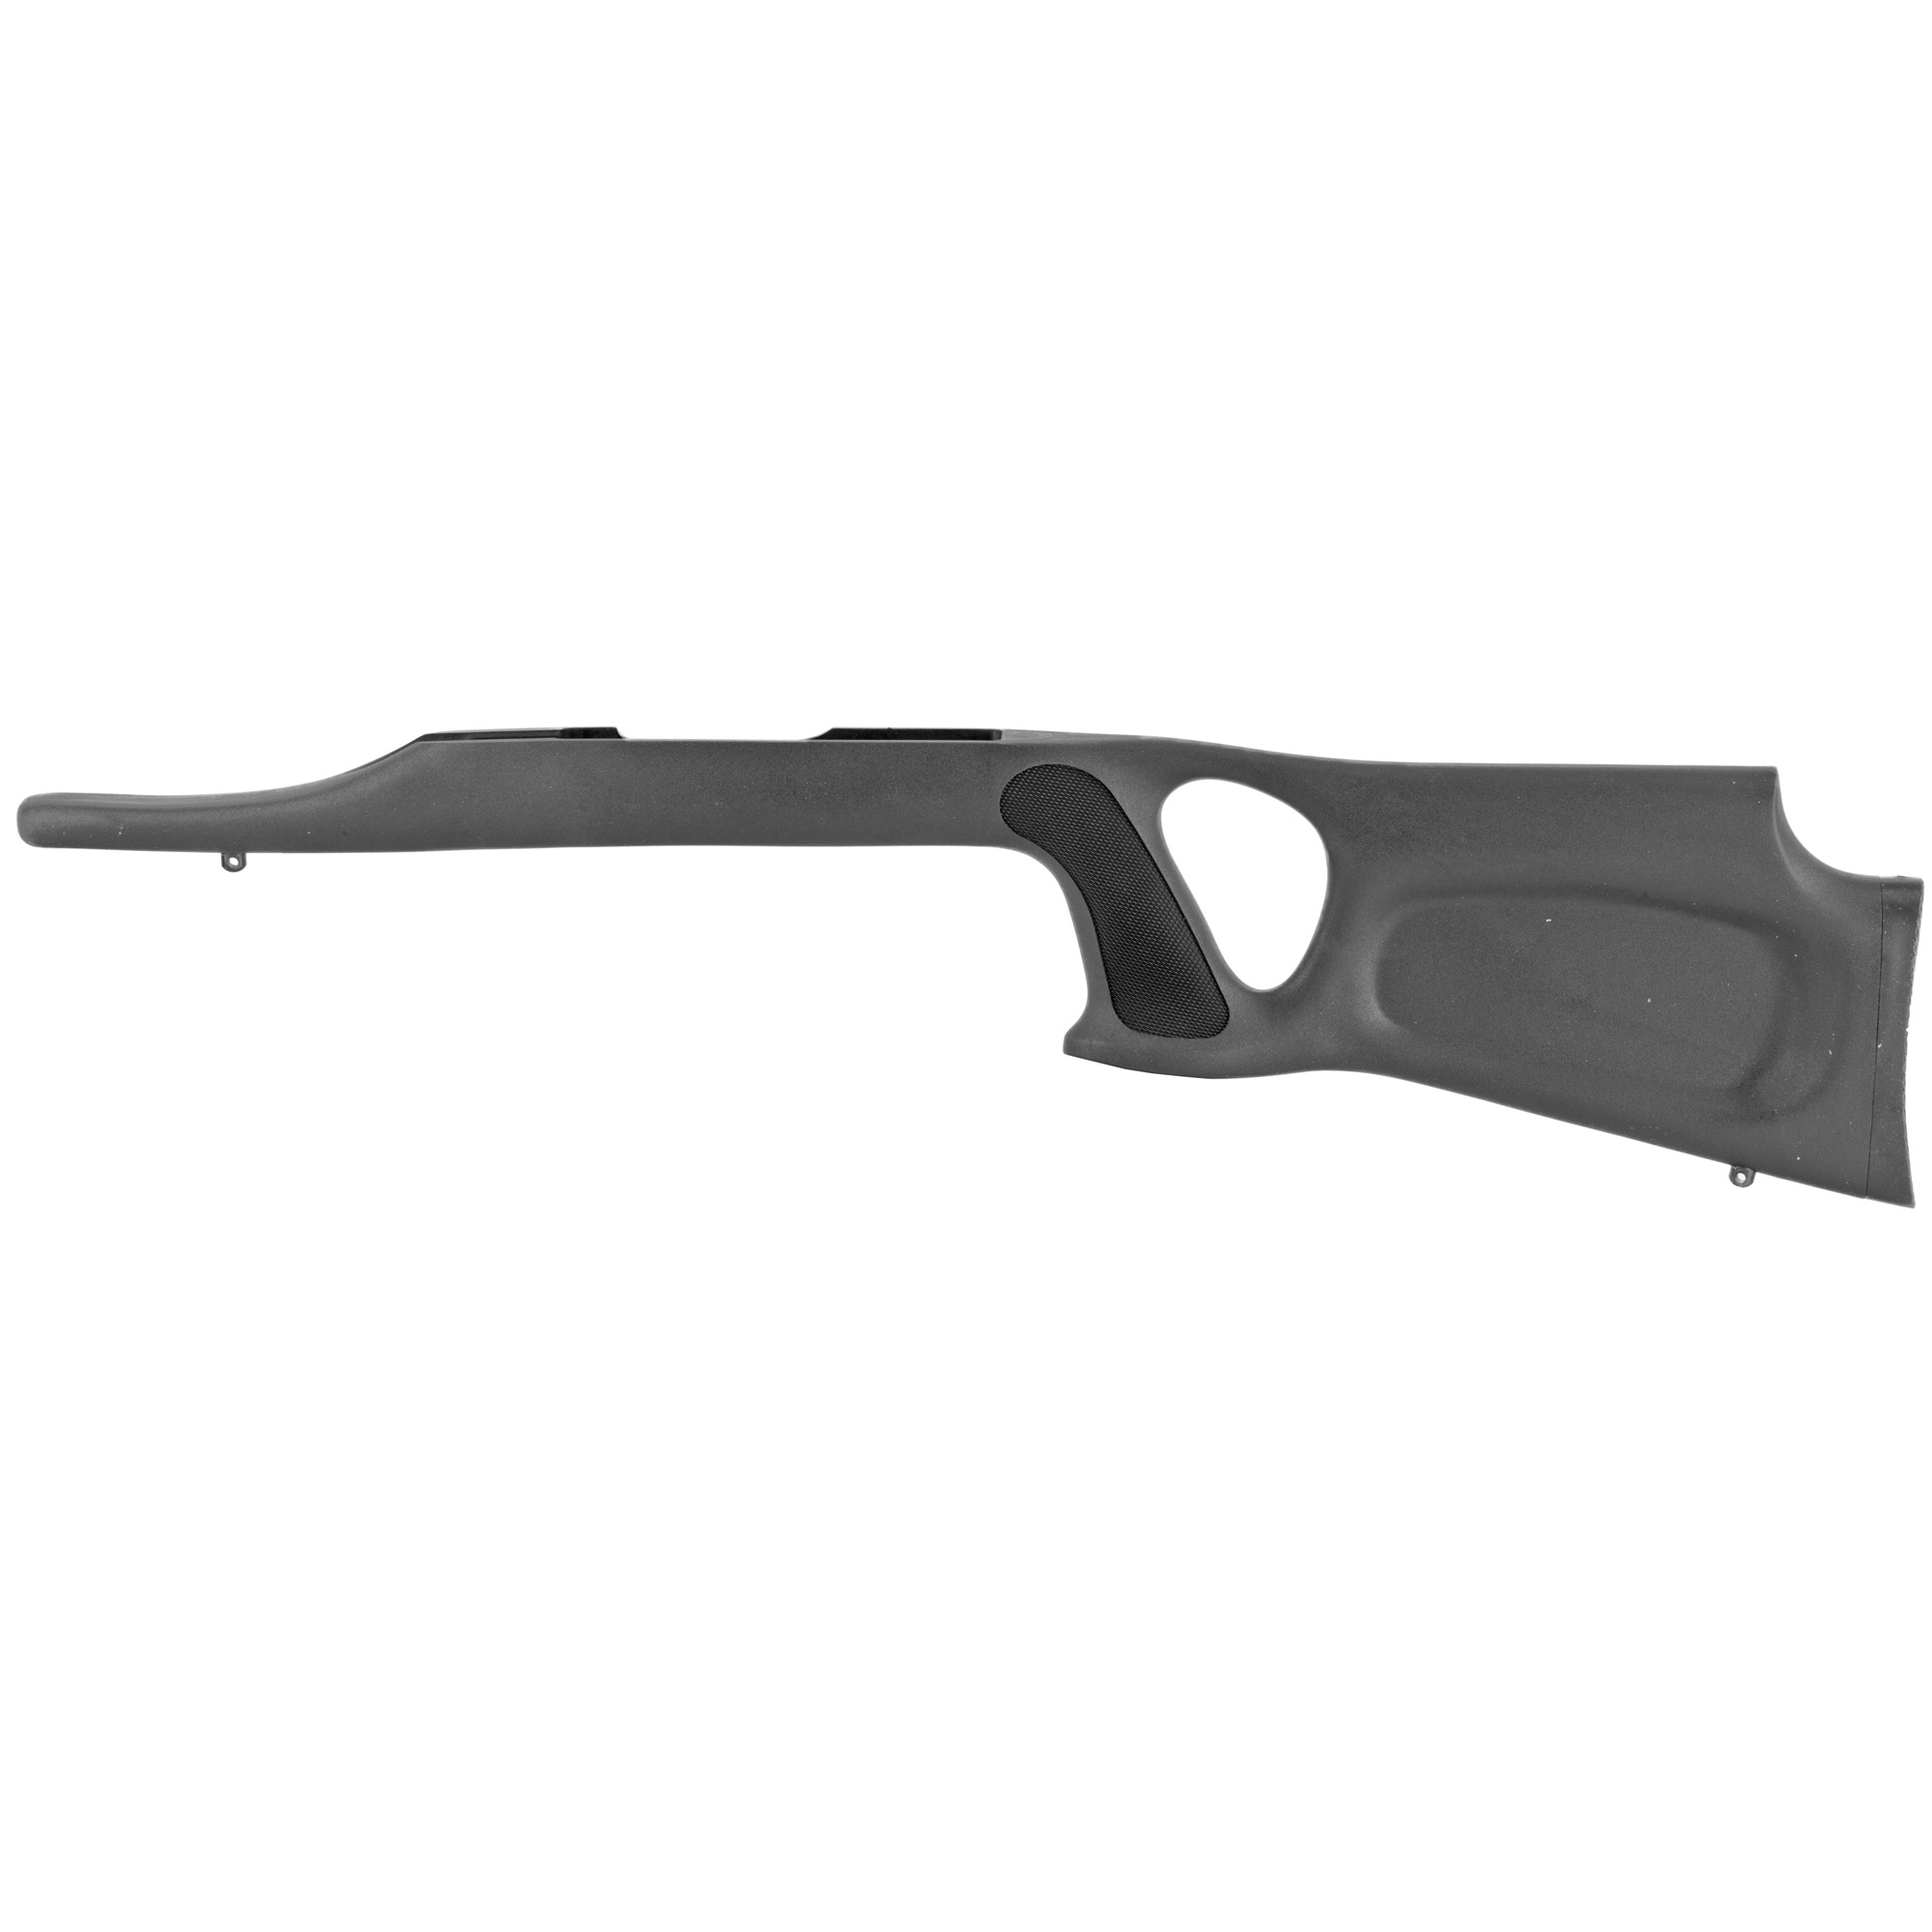 Mr Glacier Ridge 10/22 Stk Thumbhole